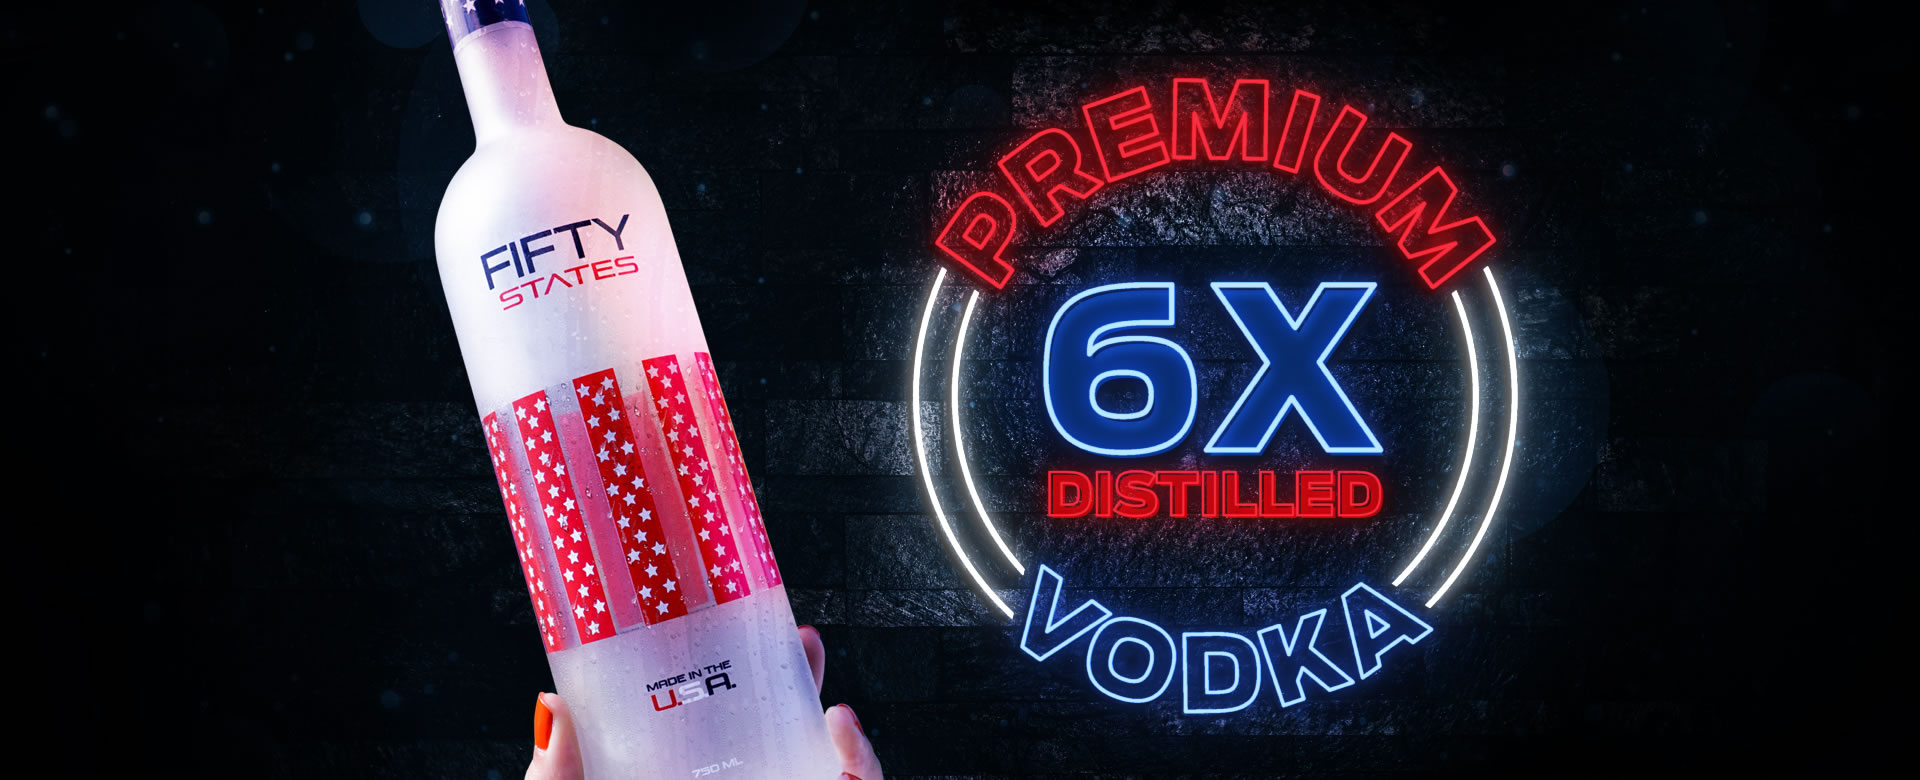 Fifty States of Vodka